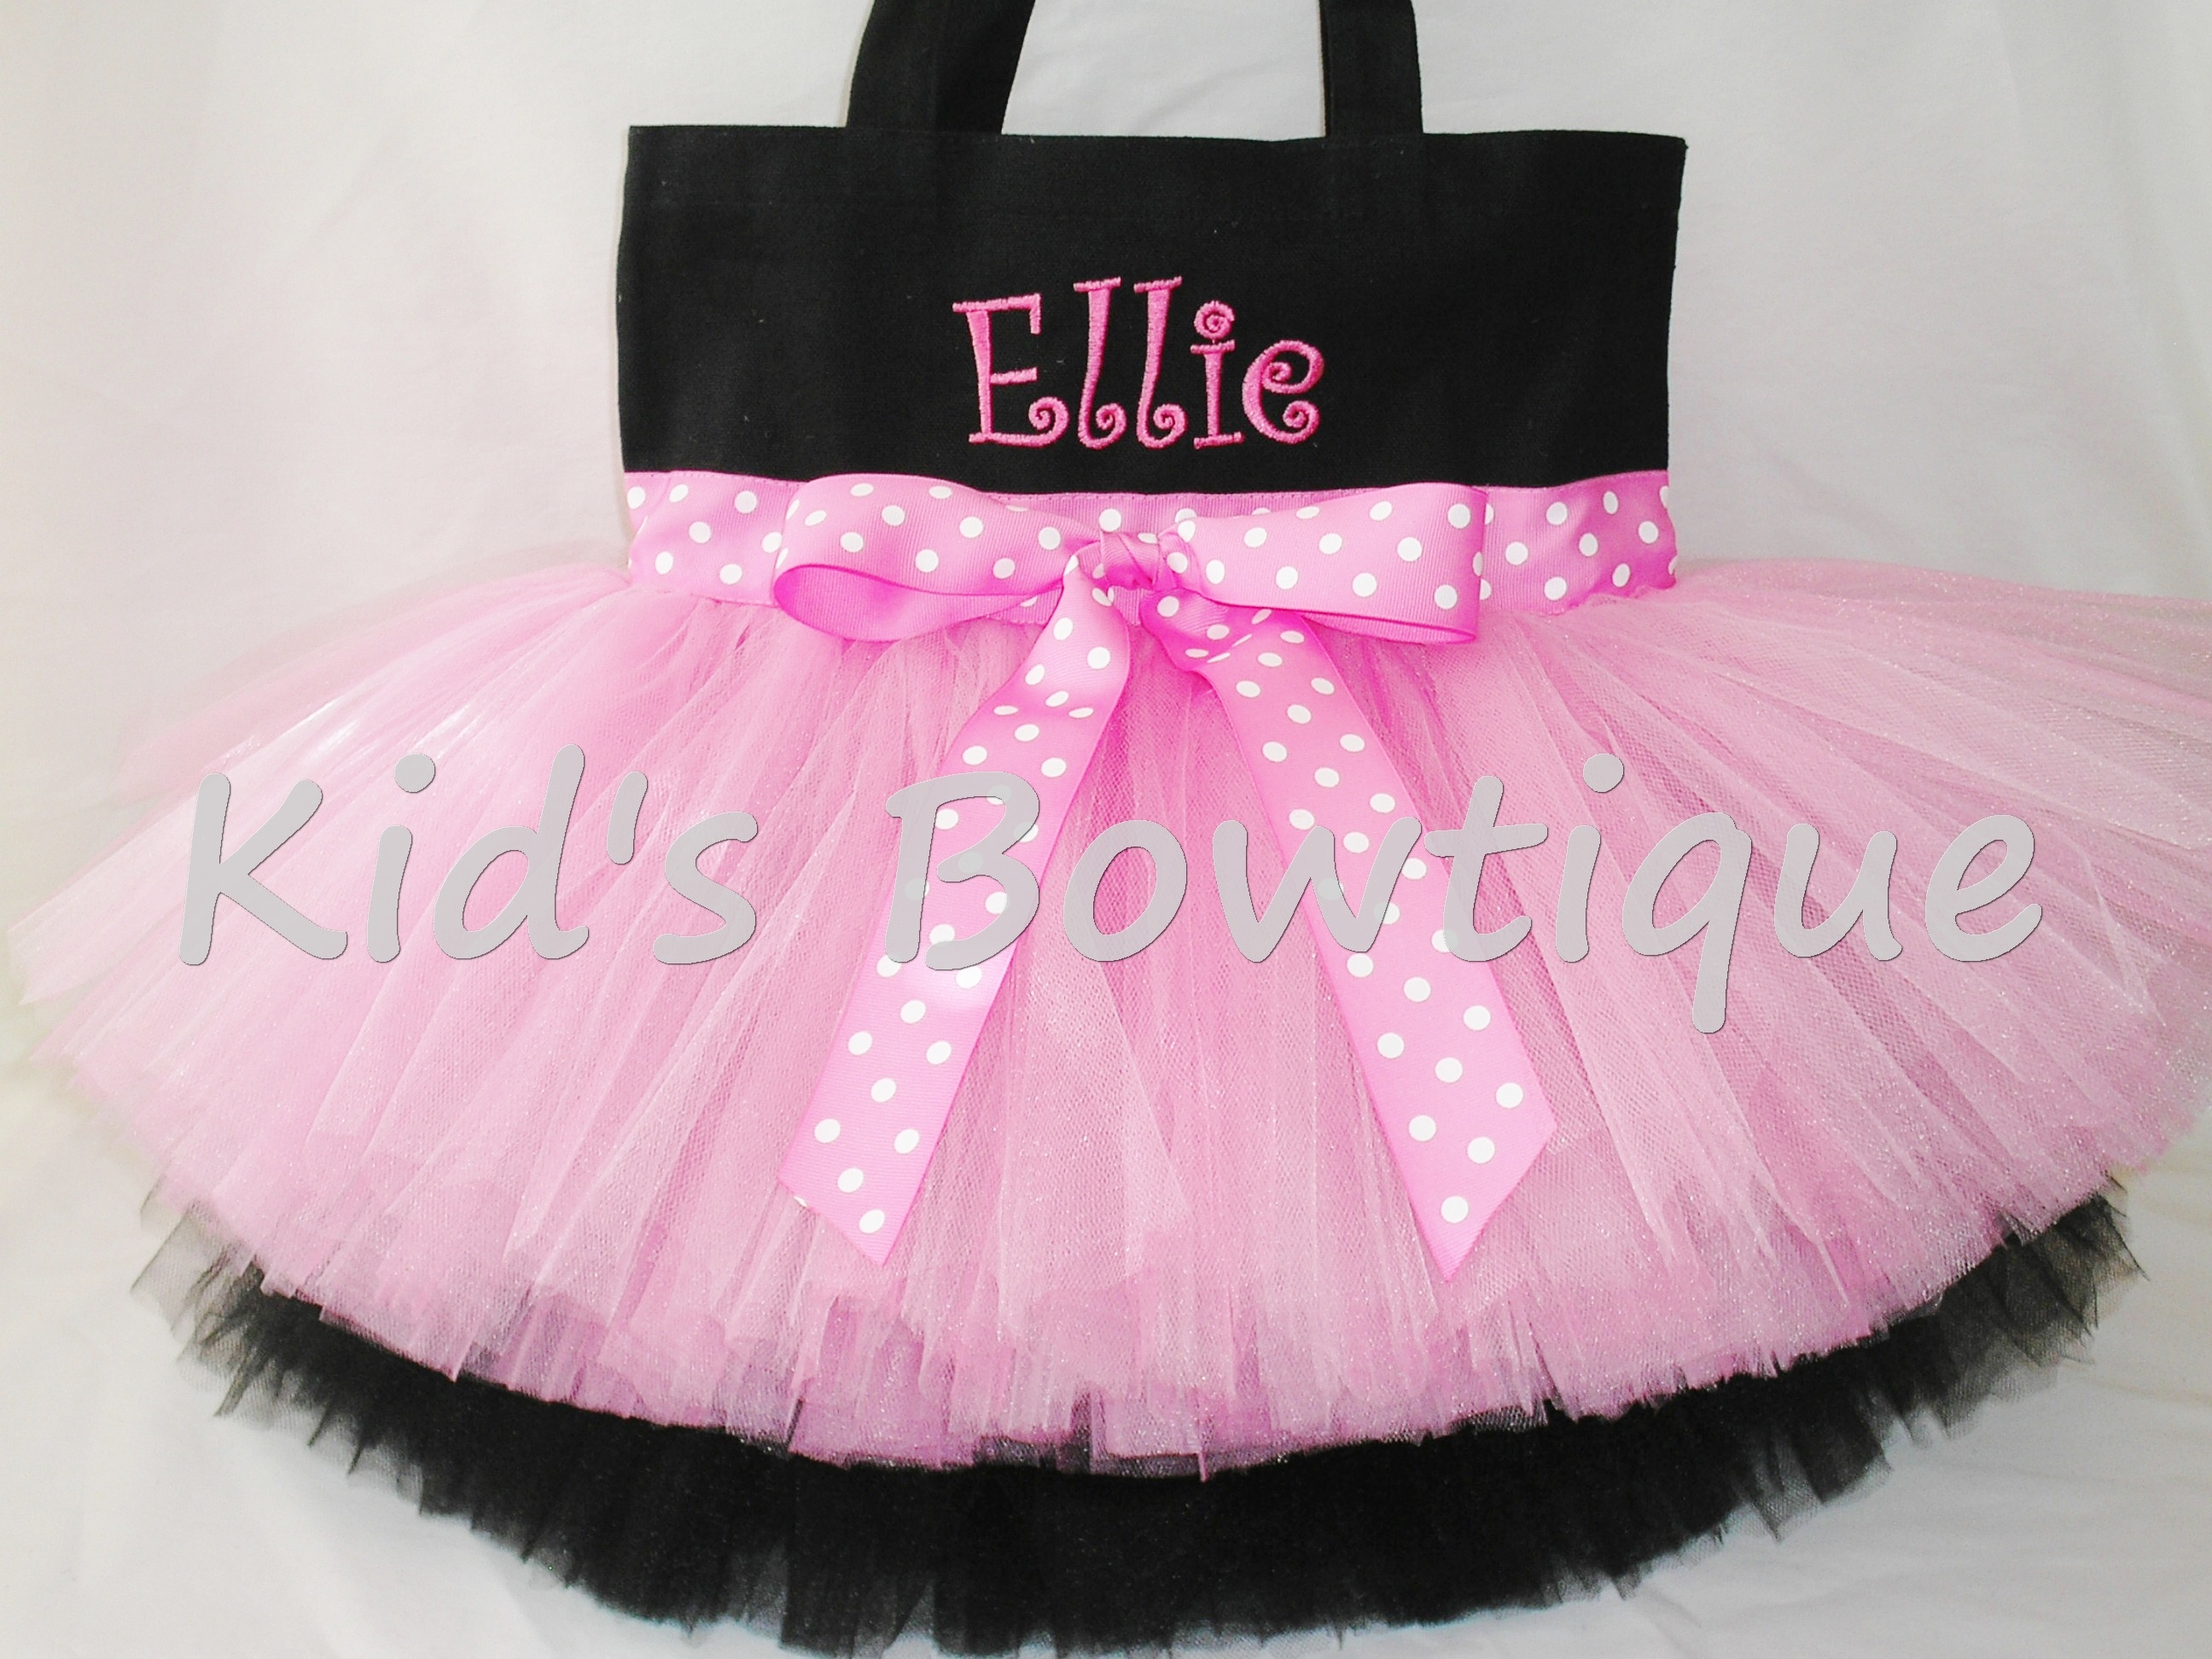 Monogrammed Tutu Tote Bag - ttb47 Double Layer Pink Polka Dots Ribbon